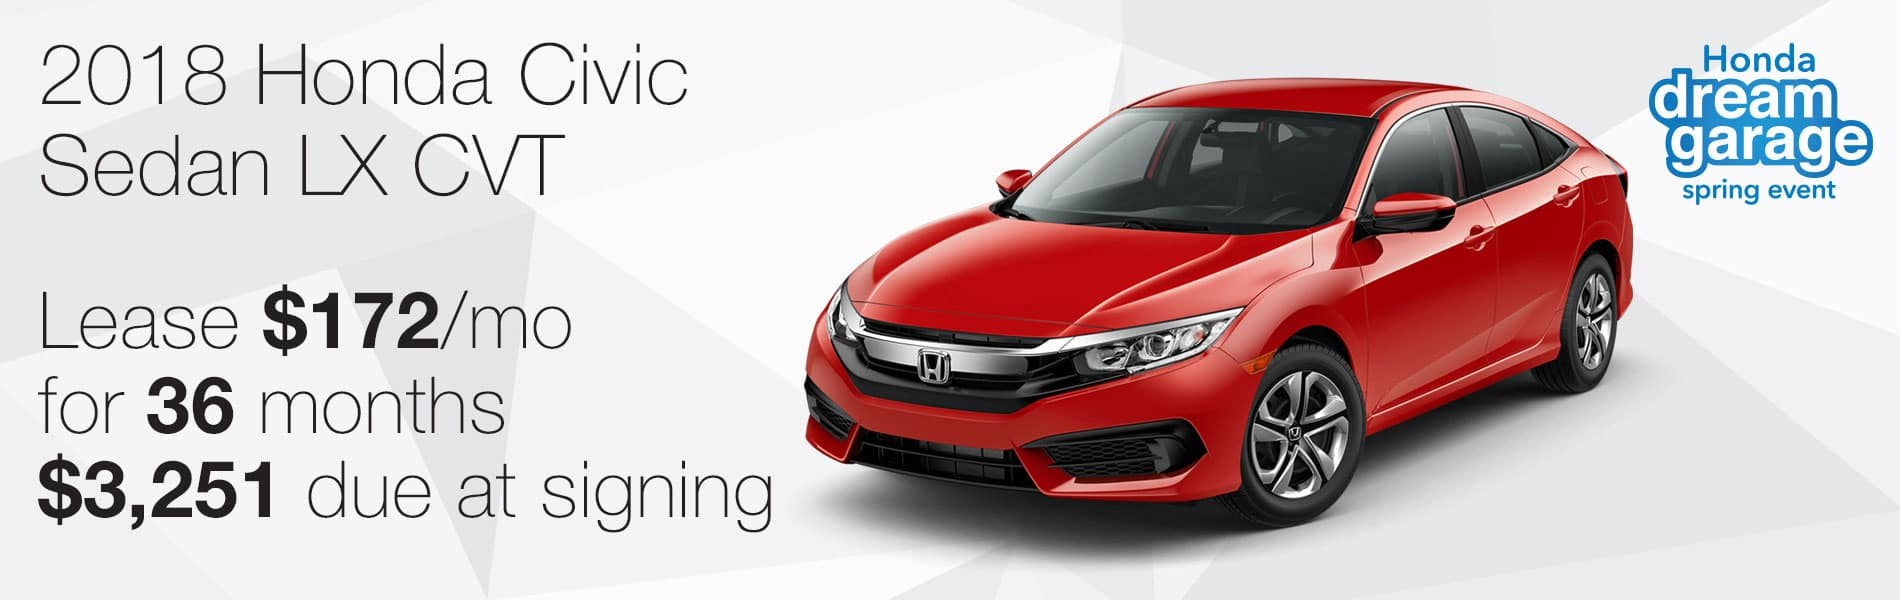 Lease a new 2018 Honda Civic Sedan for $172 per month with $3,251 due at signing